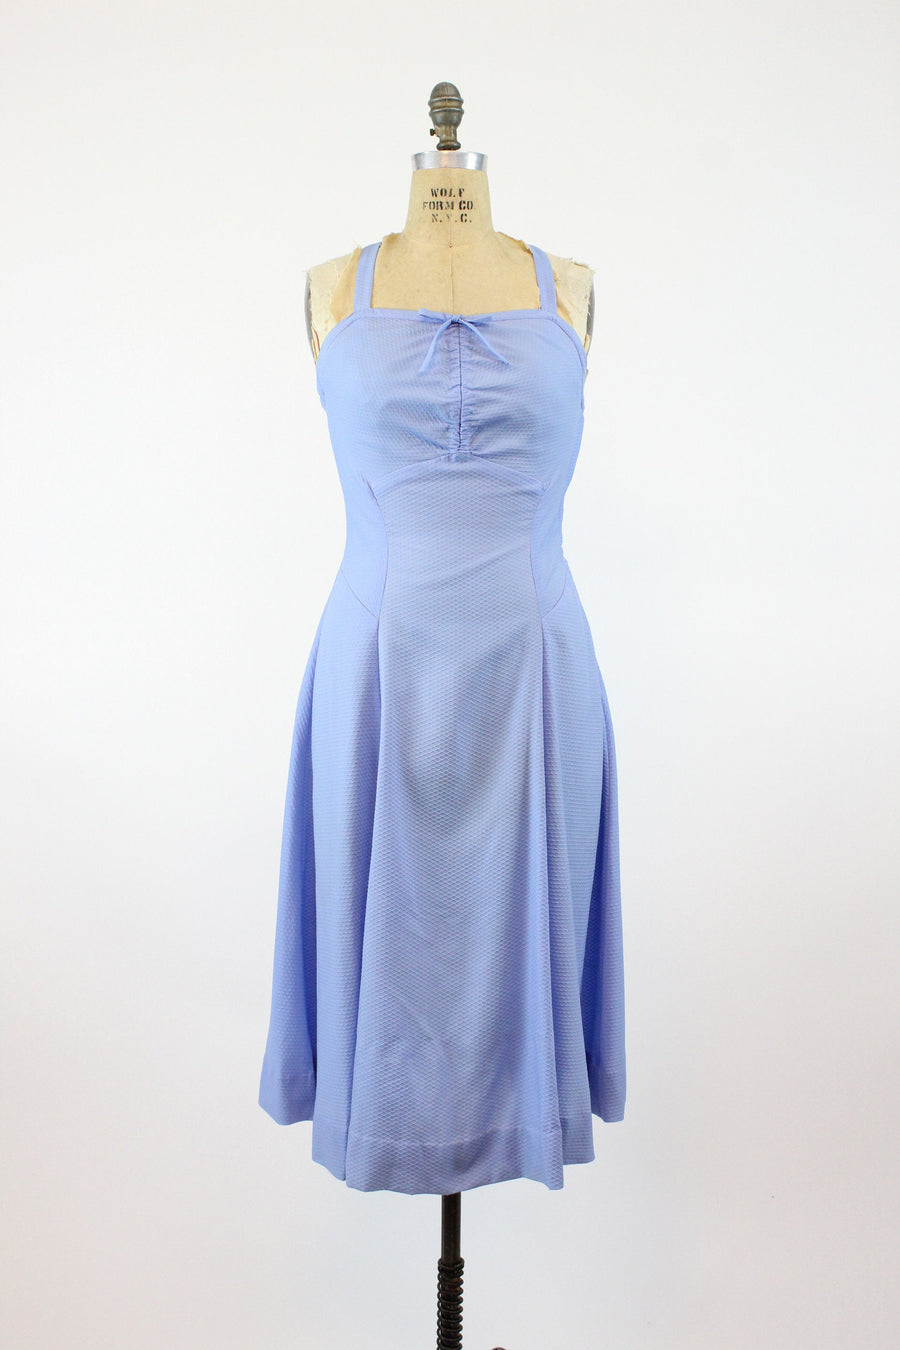 1950s halter dress small | vintage sun dress criss cross back | new in